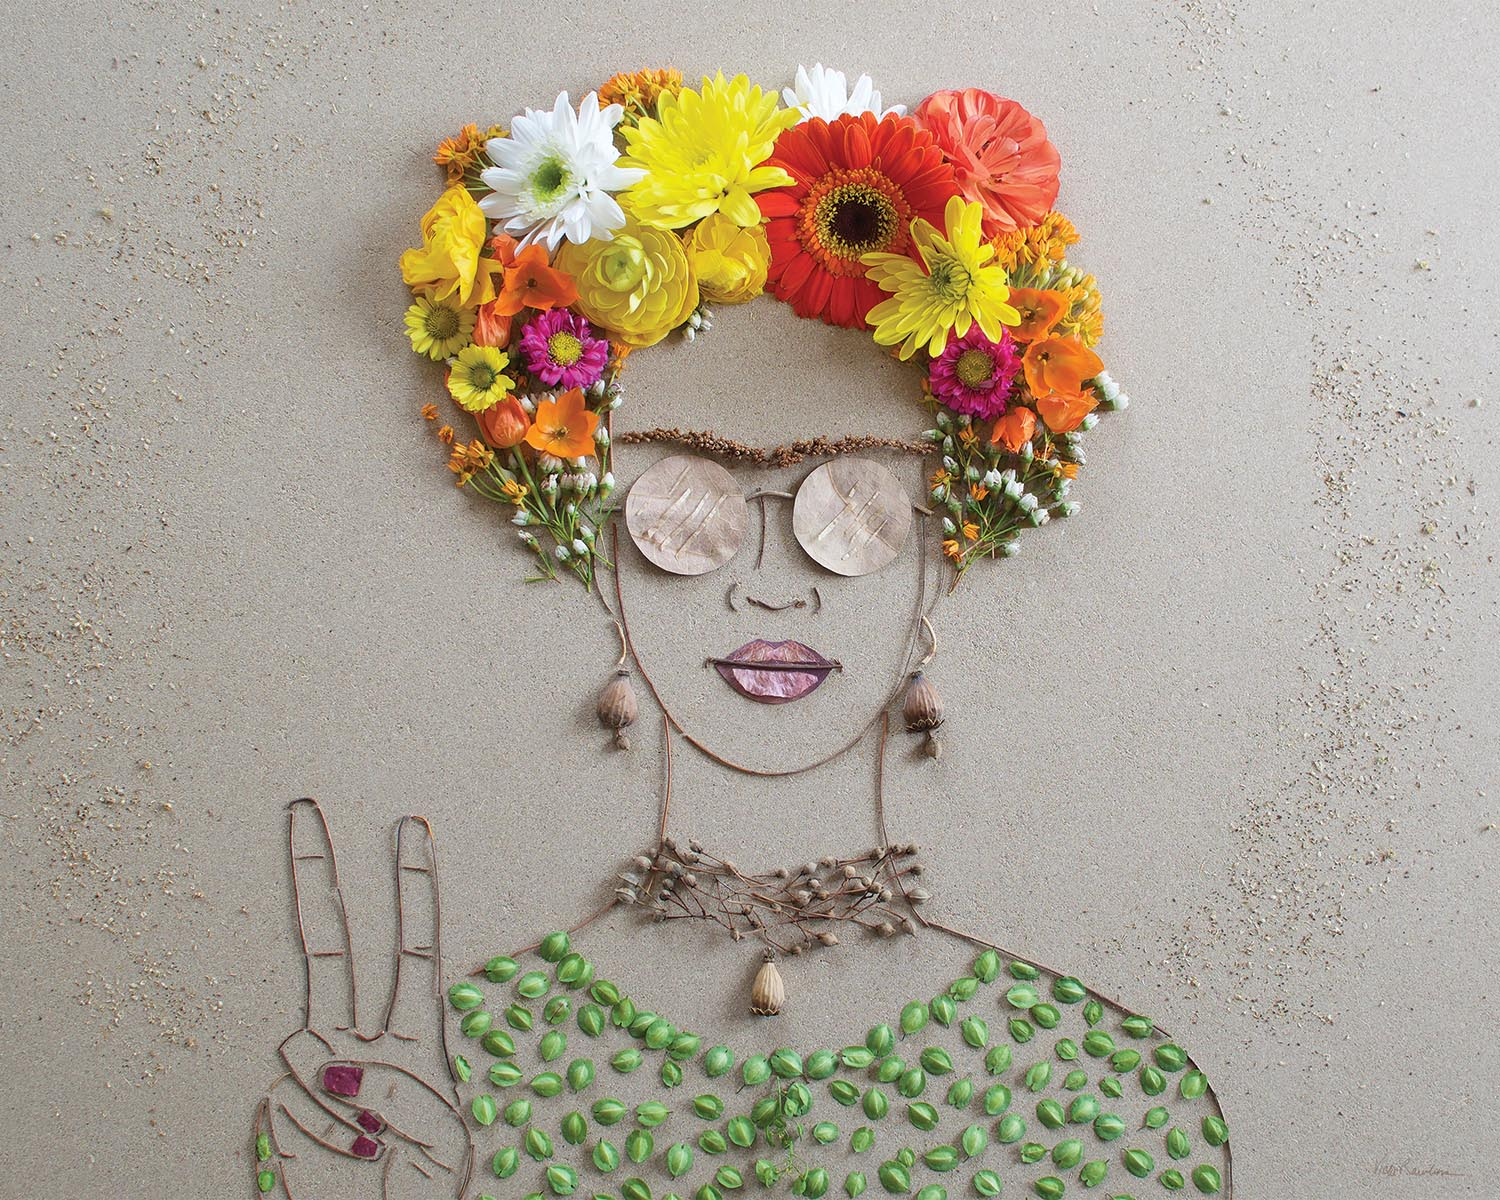 PeaceFrida_Press copy.jpg